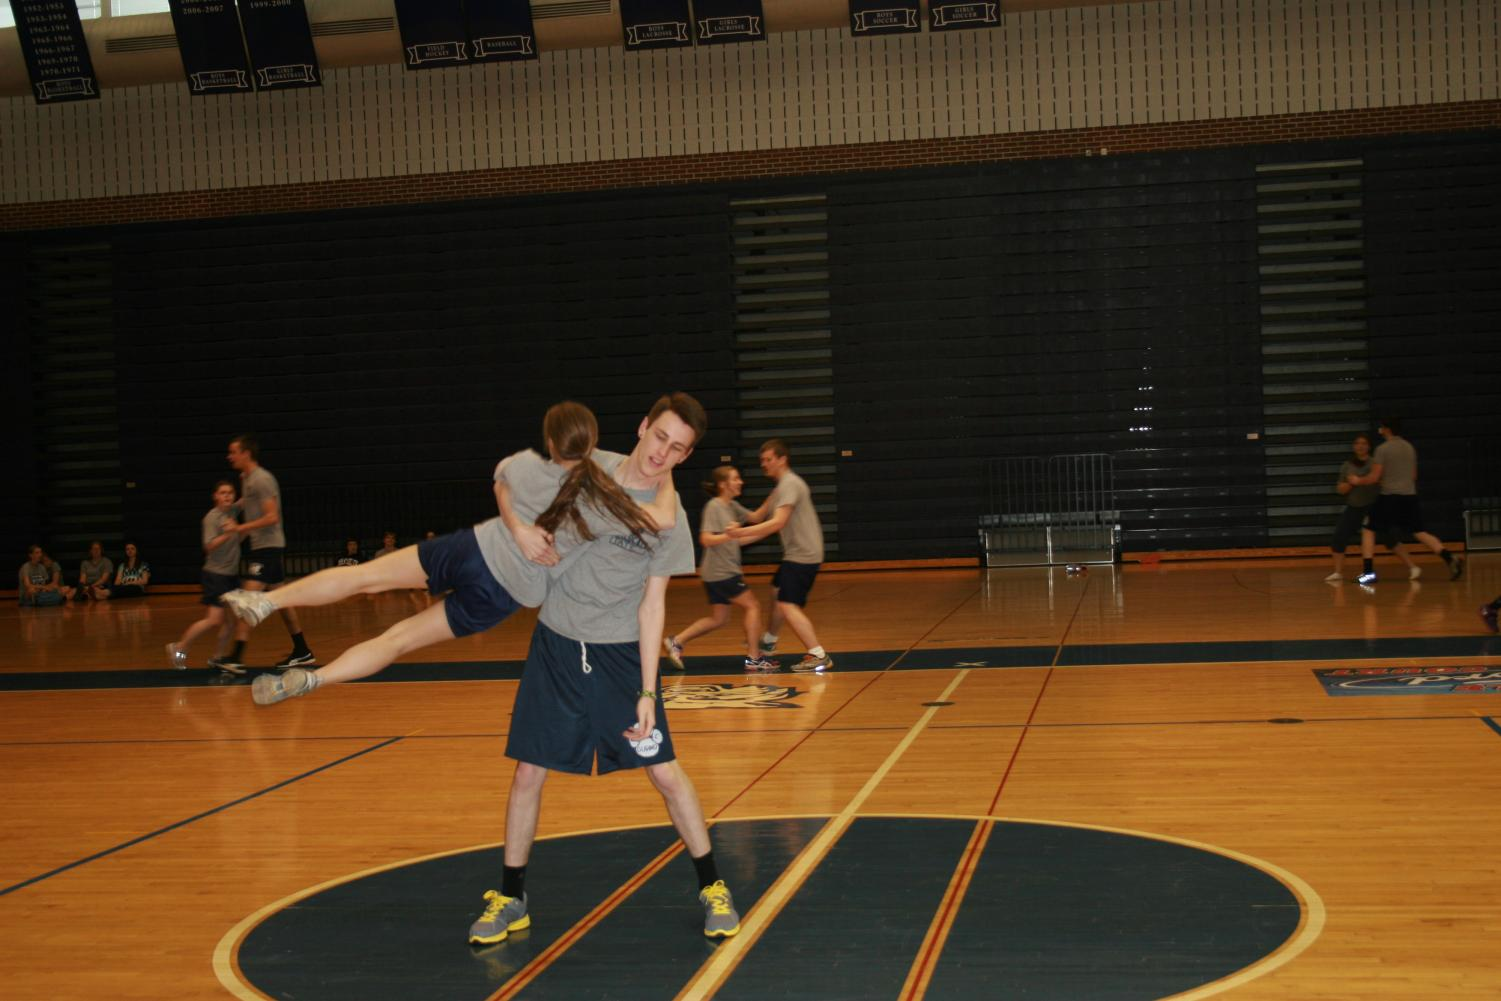 Students swing their partner around them in an effort to impress the polka judges (aka the gym teachers) during the polka unit in gym. Tricks, flips, stunts, and props were often added to routines to make an impression on the dance floor. Students looked forward to the polka unit in gym every year, going all out to become the champions.